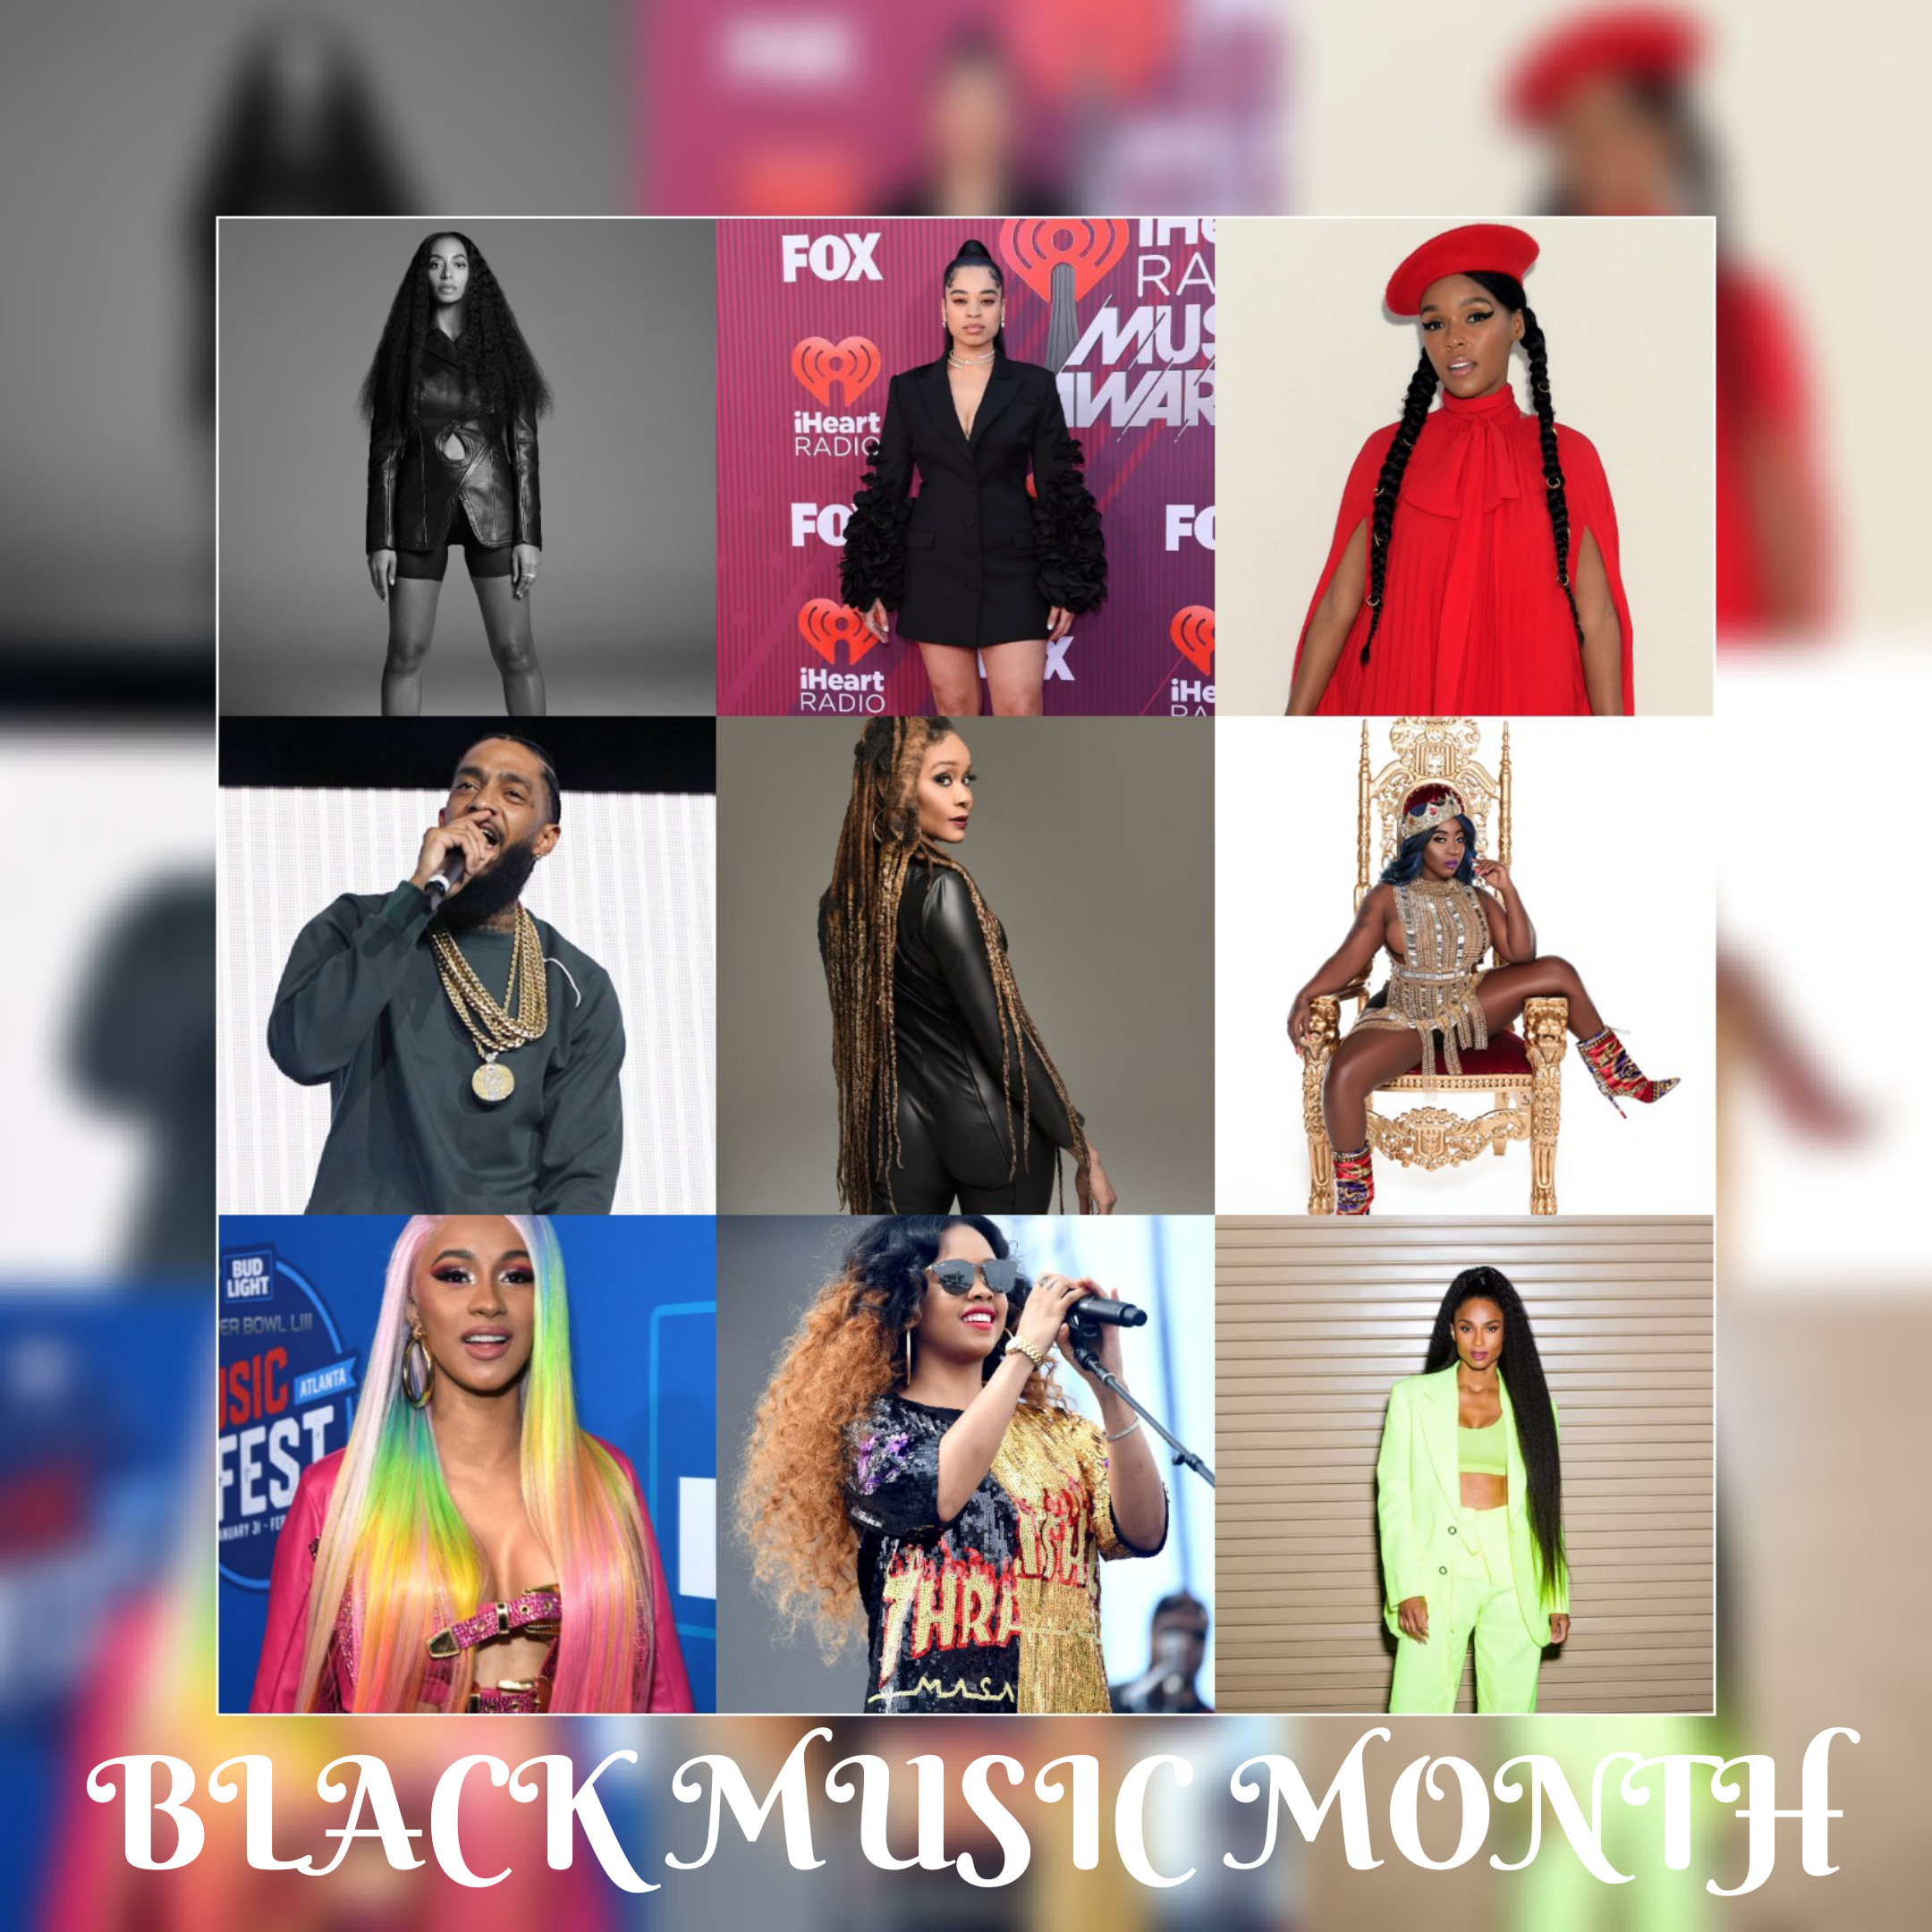 BLACK MUSIC MONTH GRAPHIC 2.png